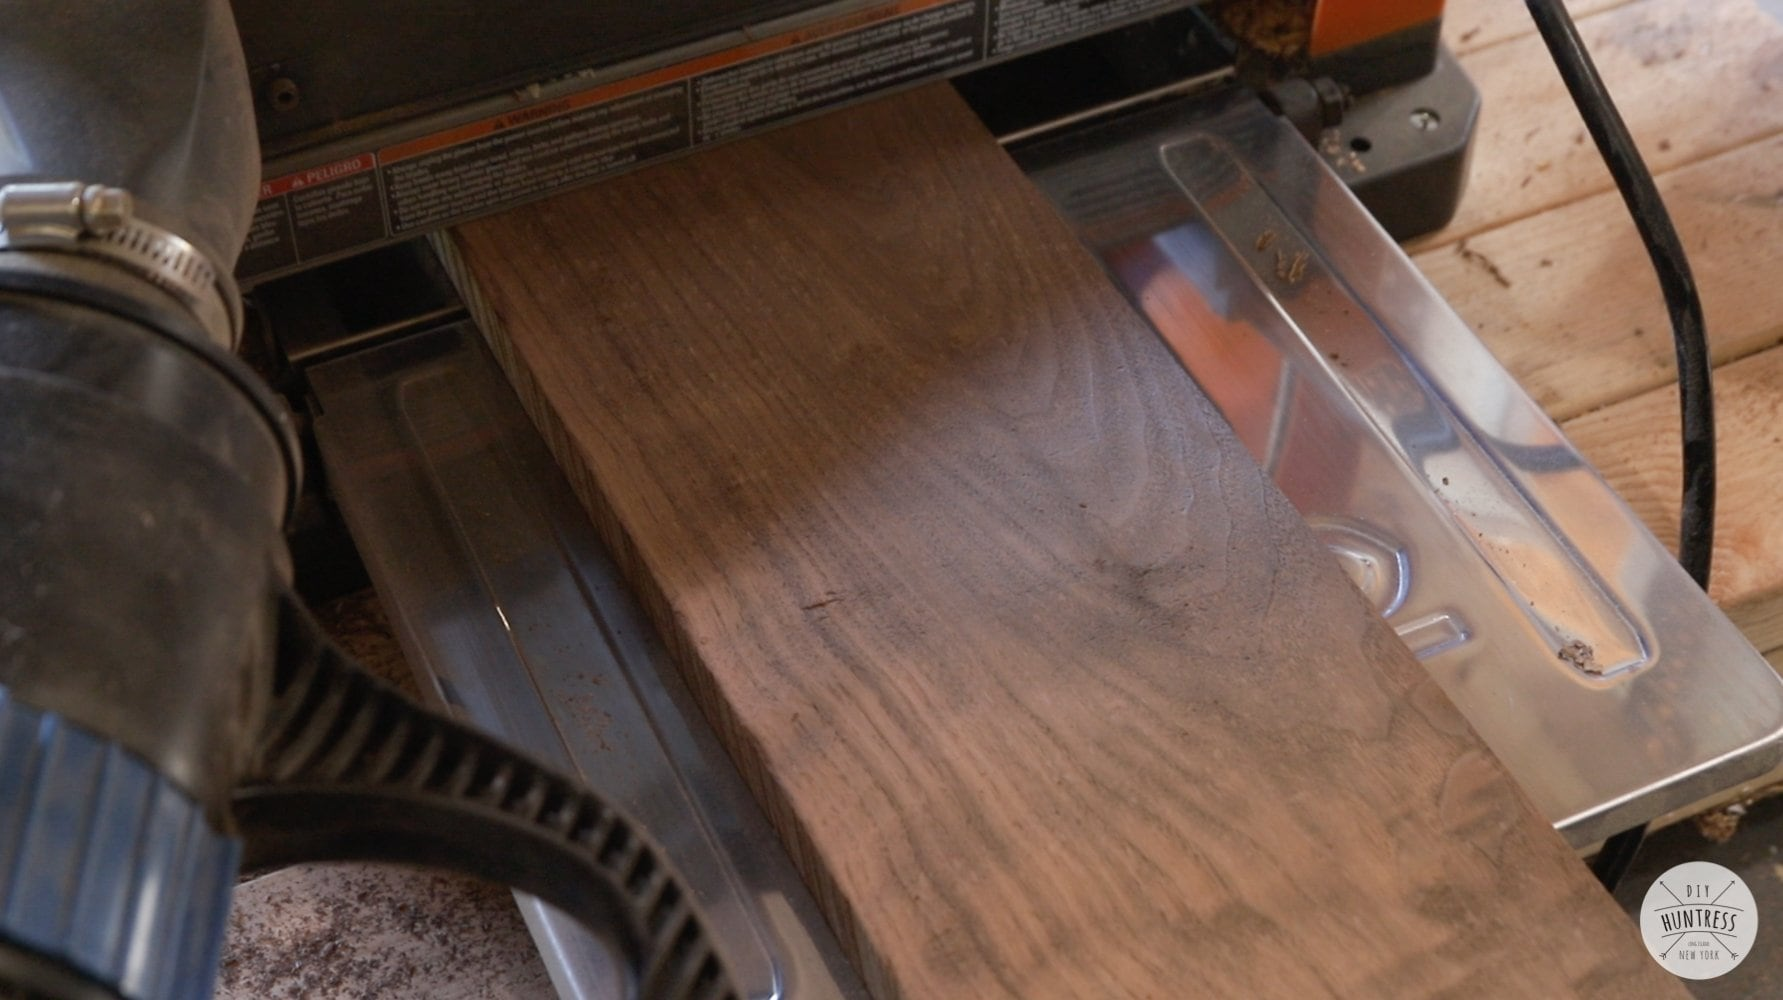 running walnut through surface planer